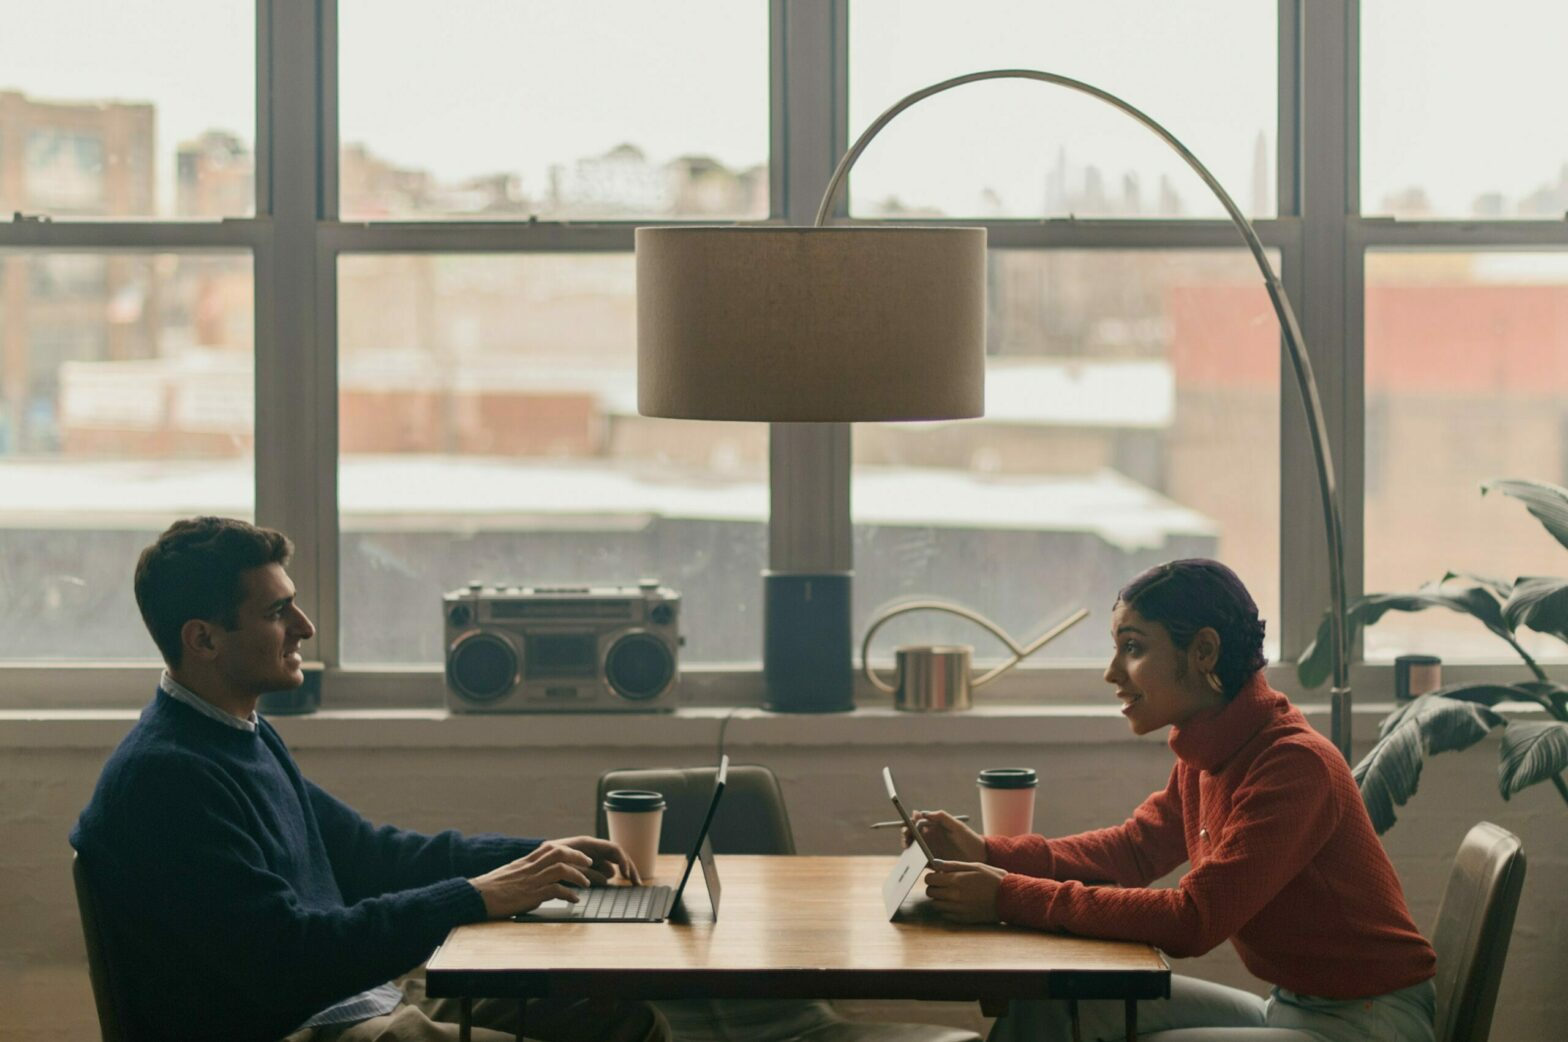 Two people sit and converse, facing each other, at a table in front of a wall of large windows.